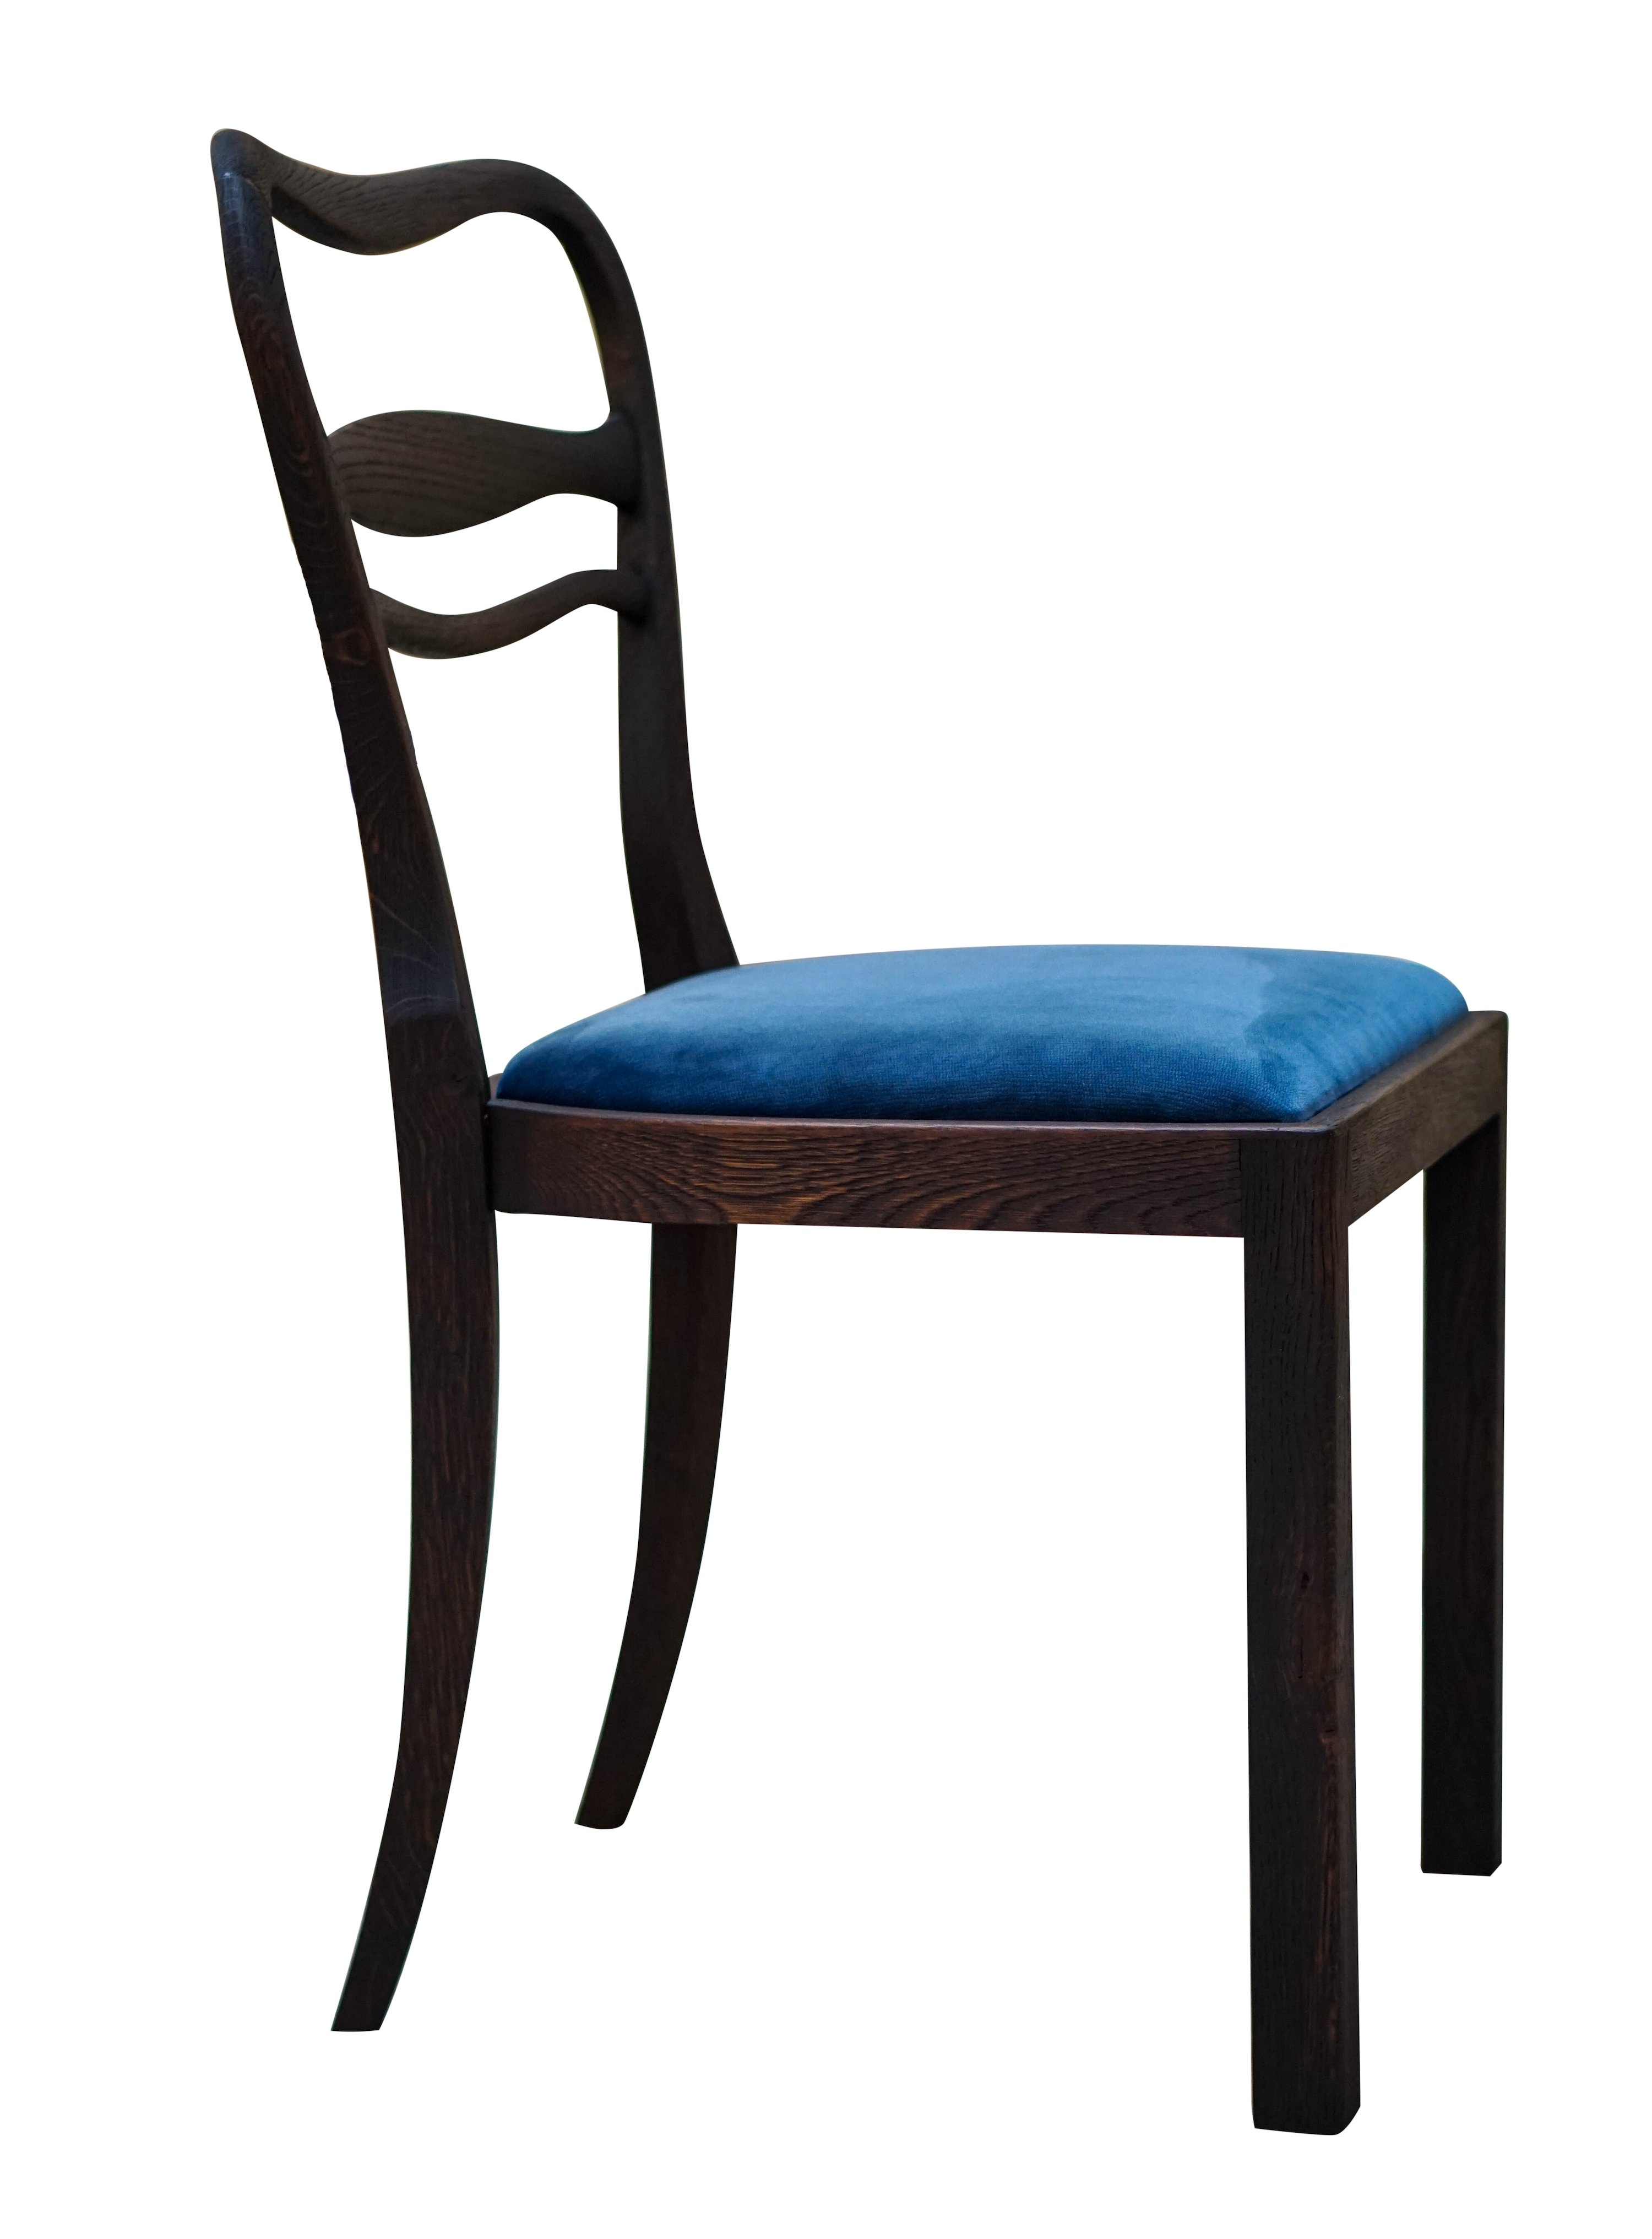 4 X Art Deco Dining Chair 1930s 122041